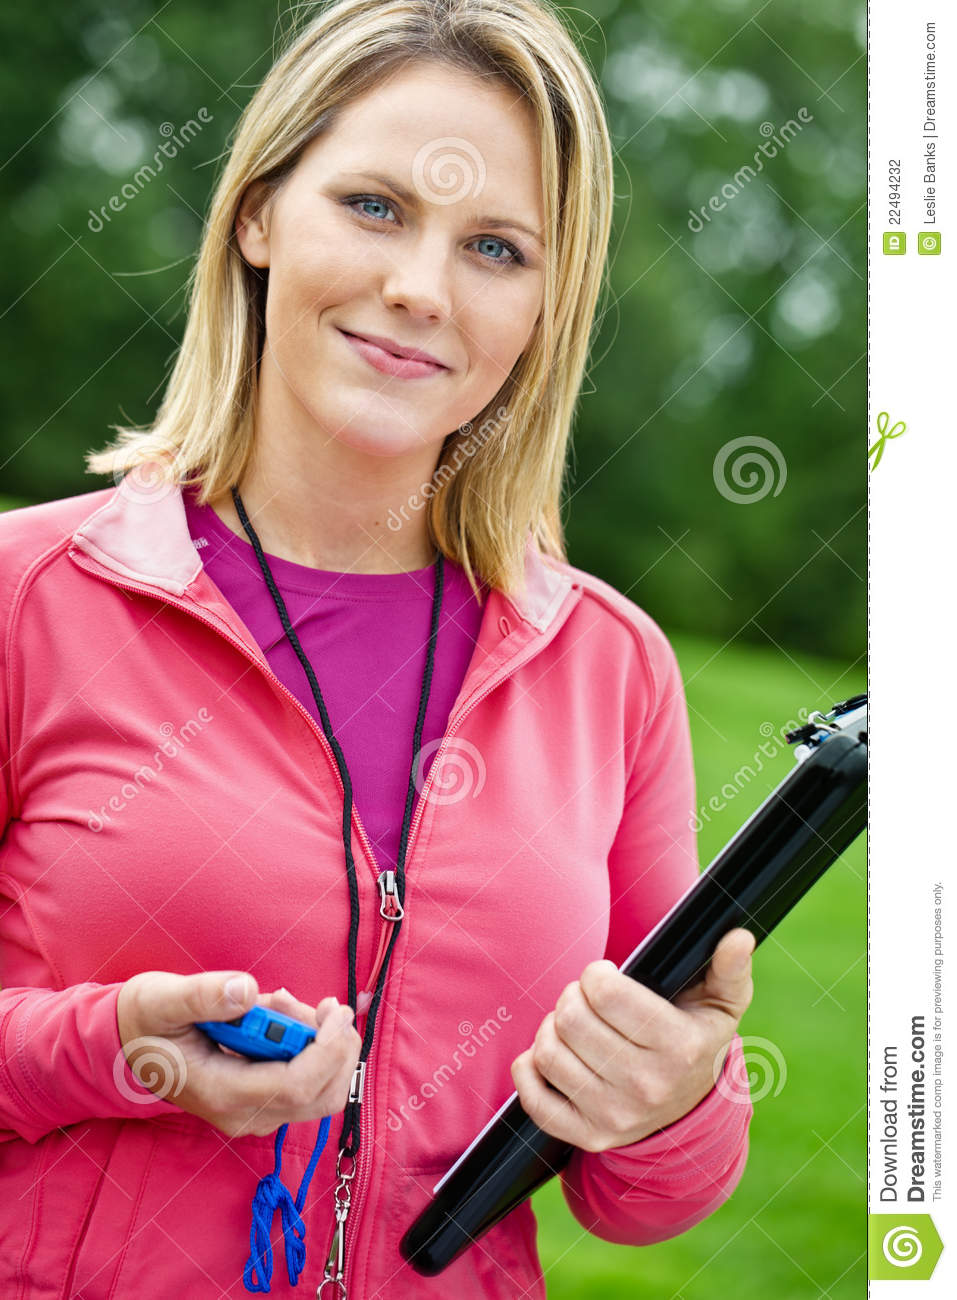 Female Fitness Trainer Portrait Stock Photo Image Of